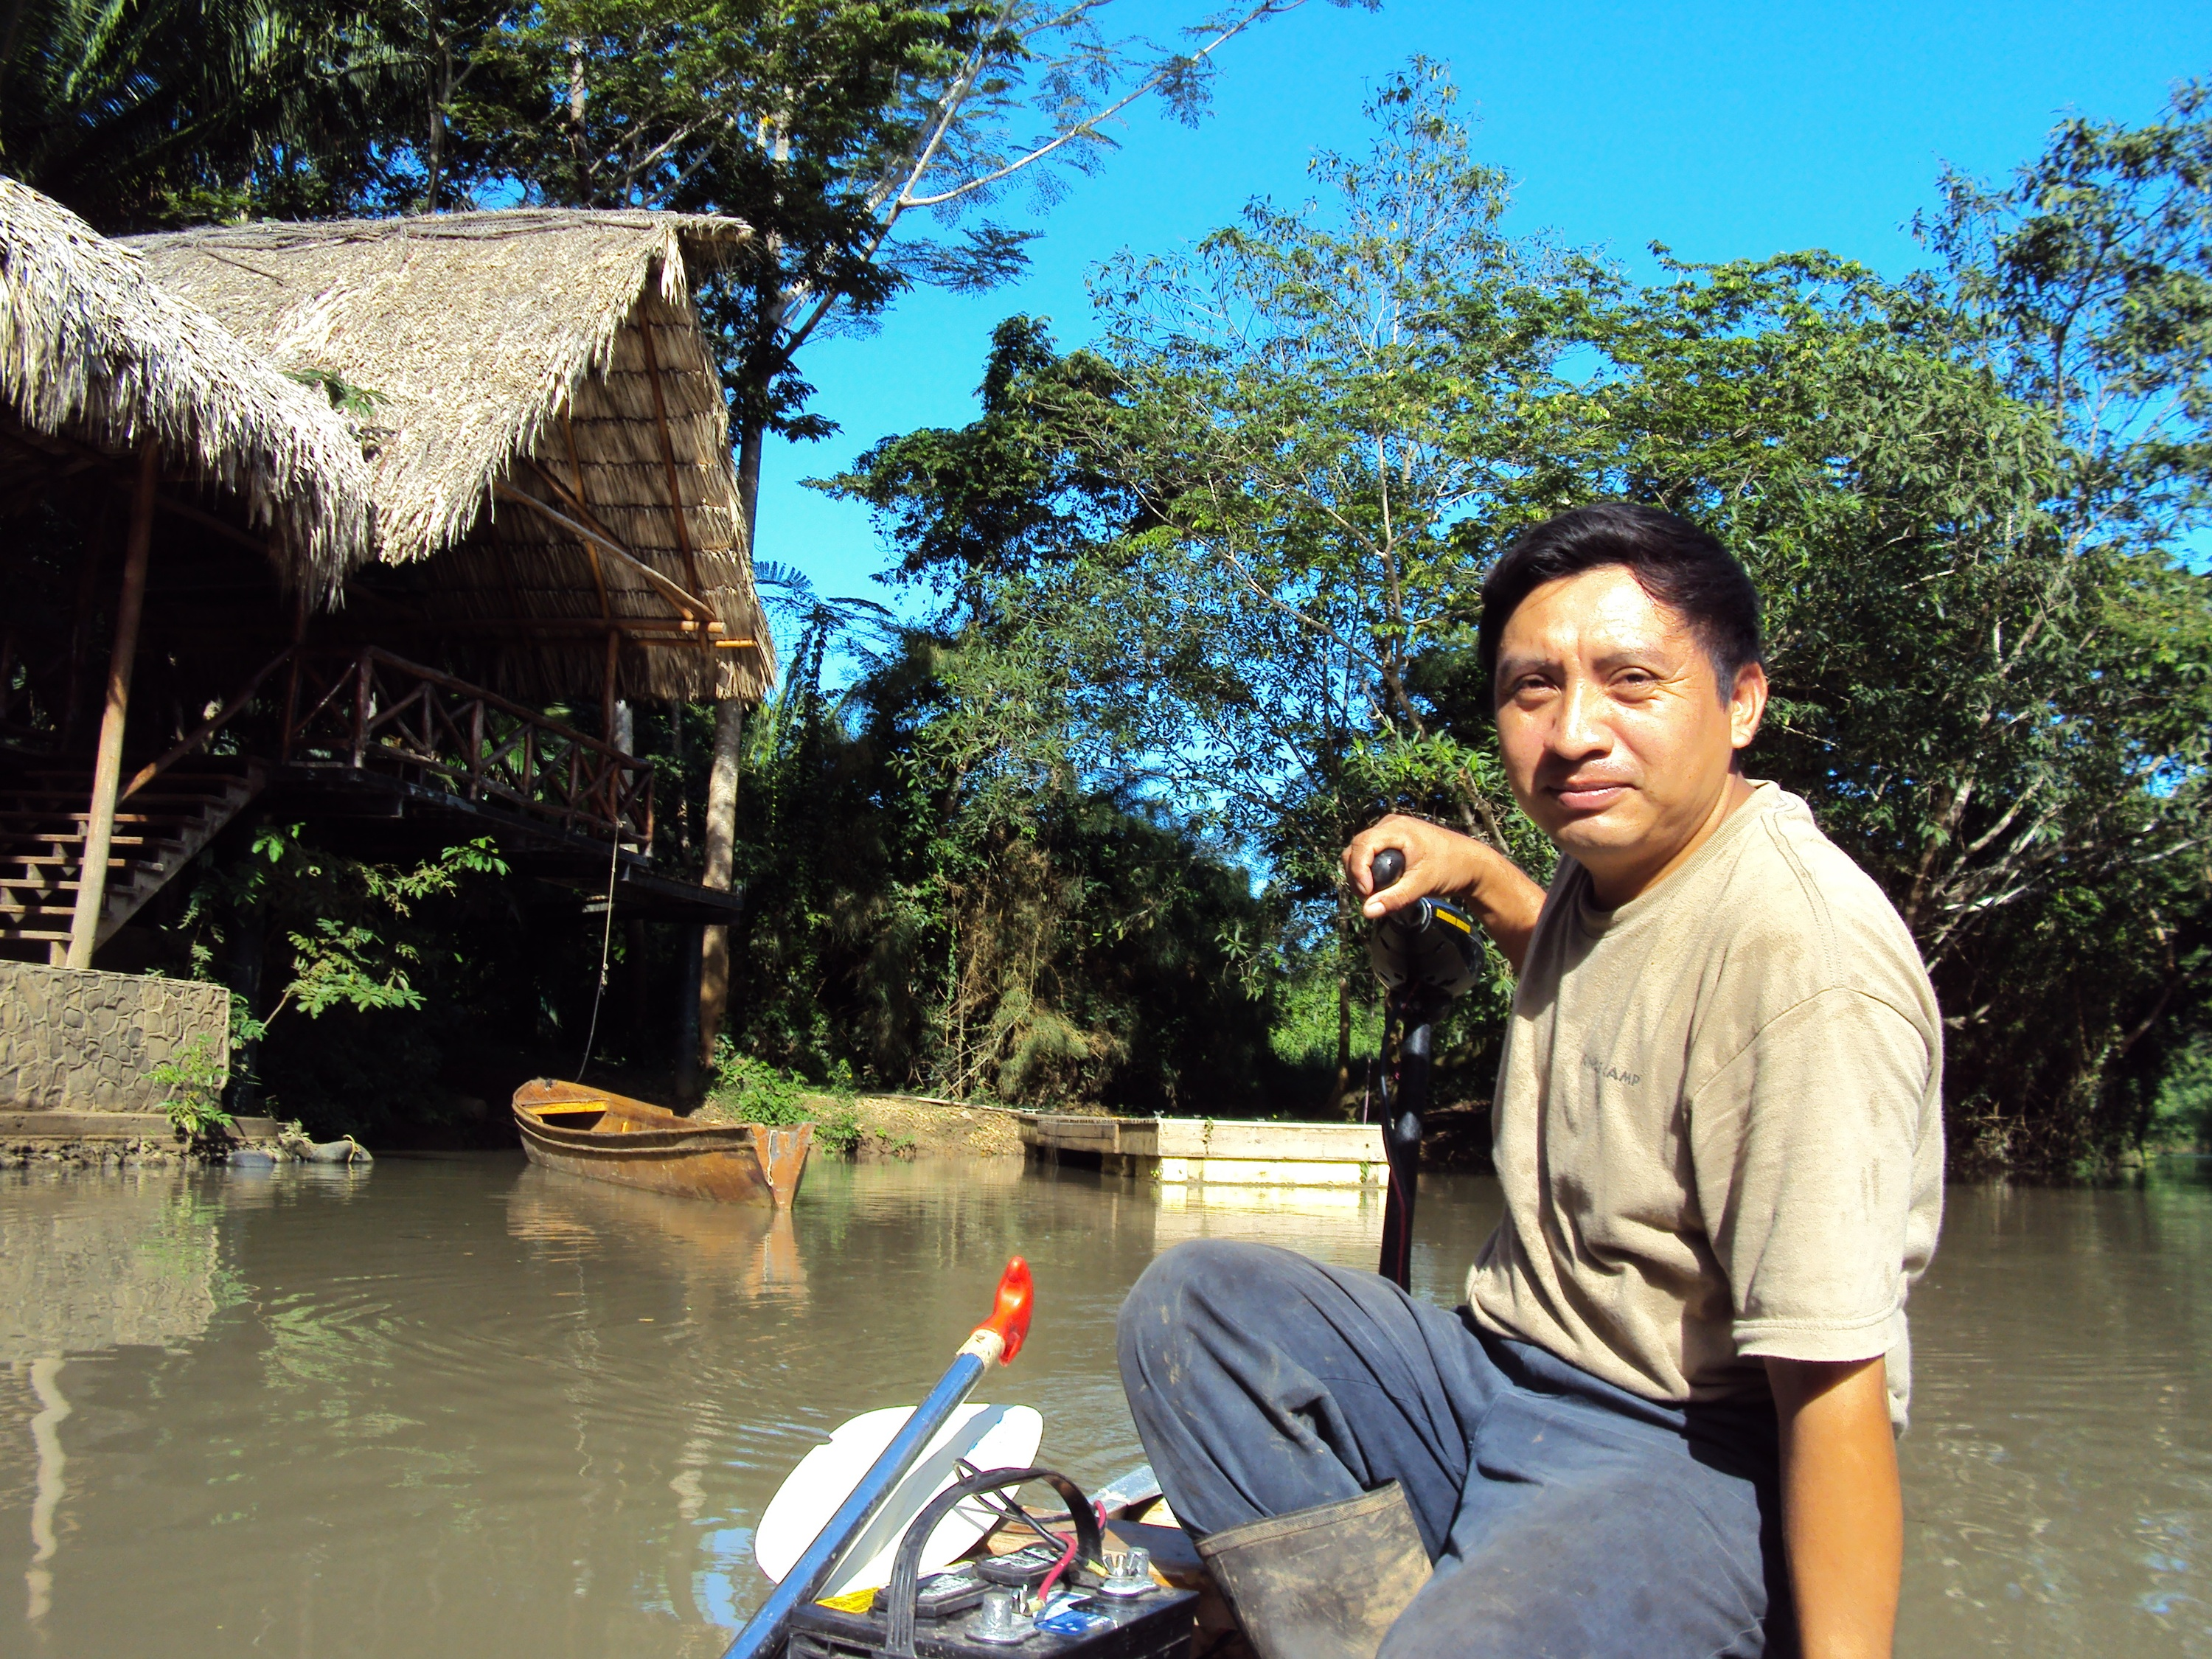 Man in a boat smiles surrounded by water and a thatched hut